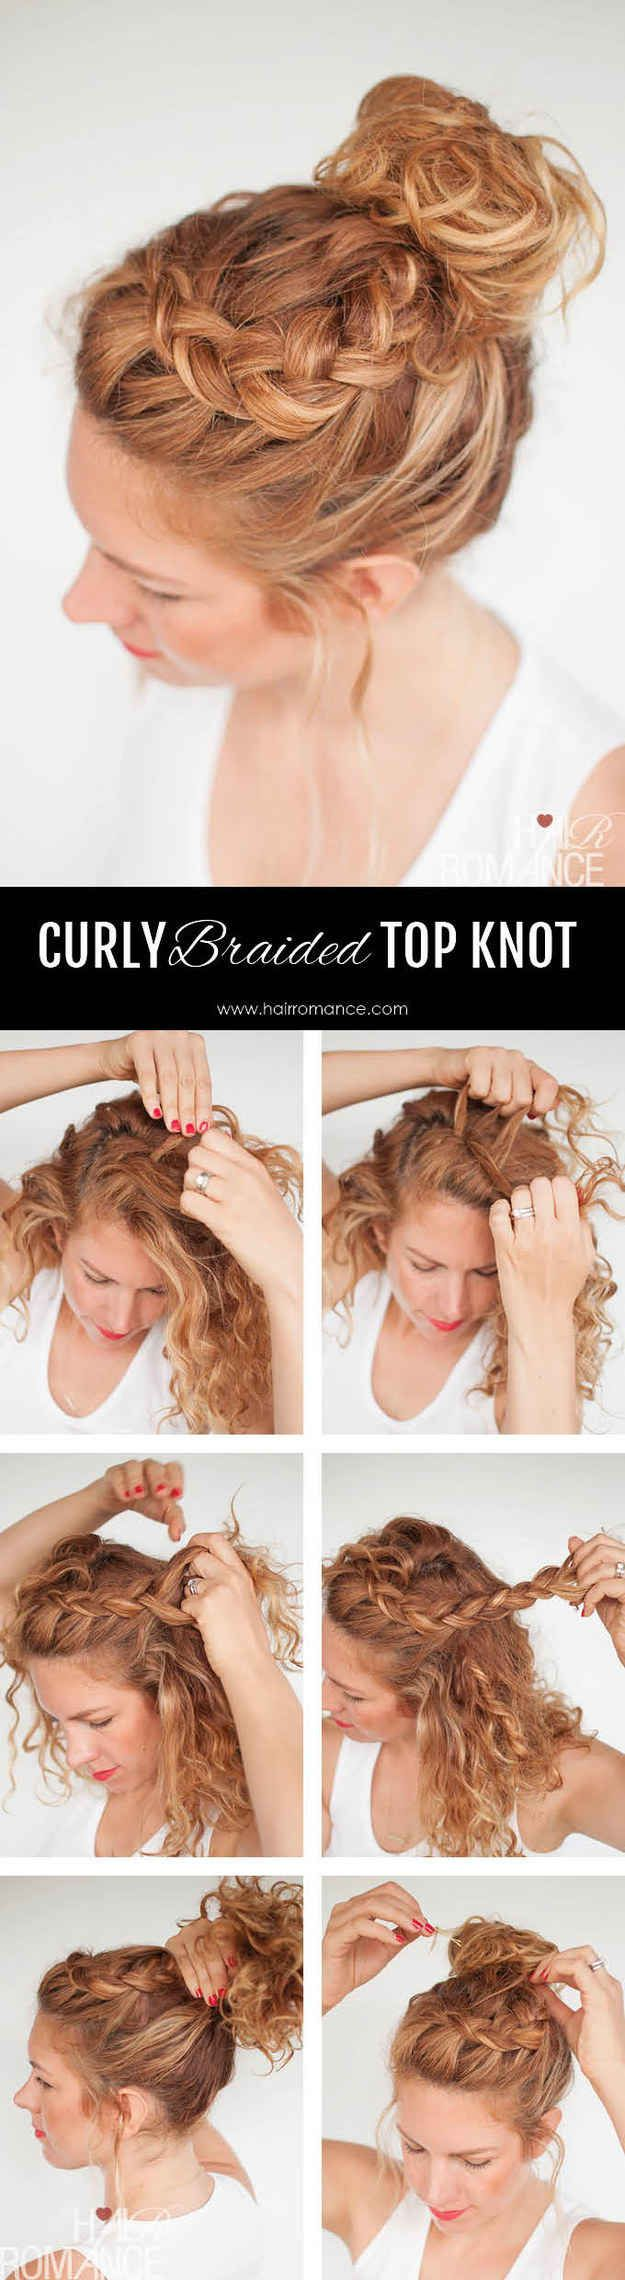 And braid one section of hair at your crown into a bun to prevent flyaways.